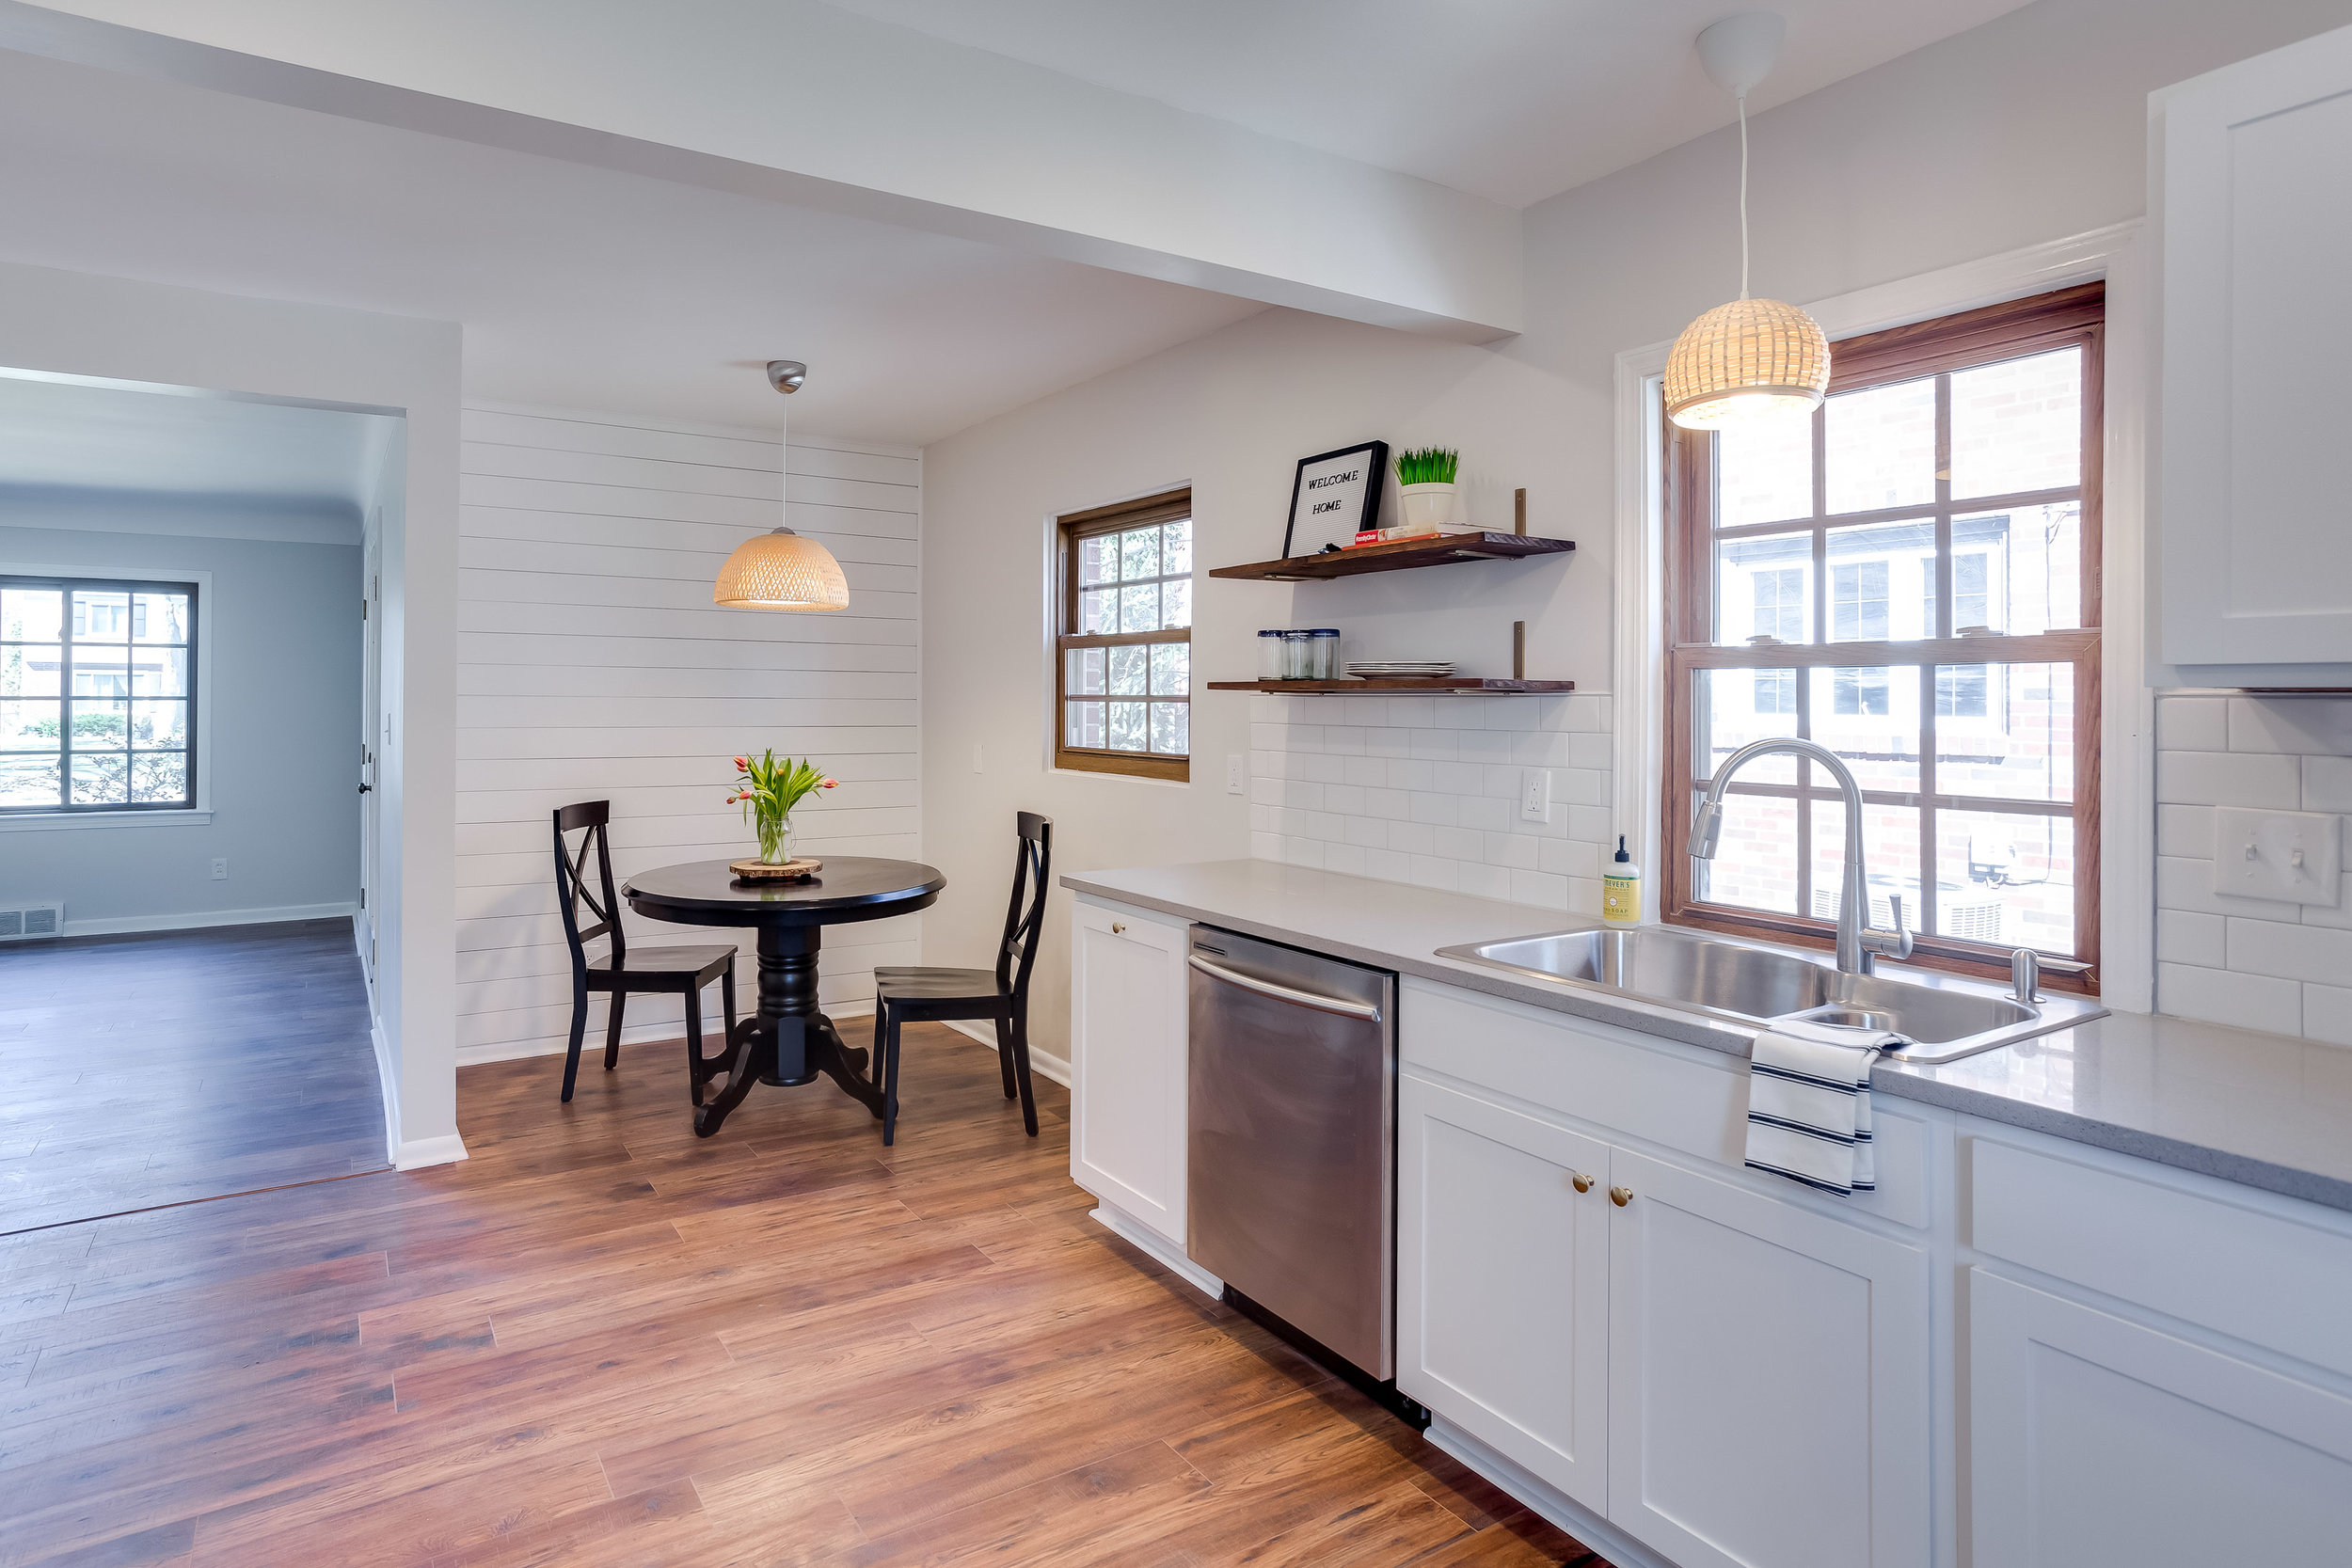 After, the tiny kitchen was converted into a functional breakfast nook.